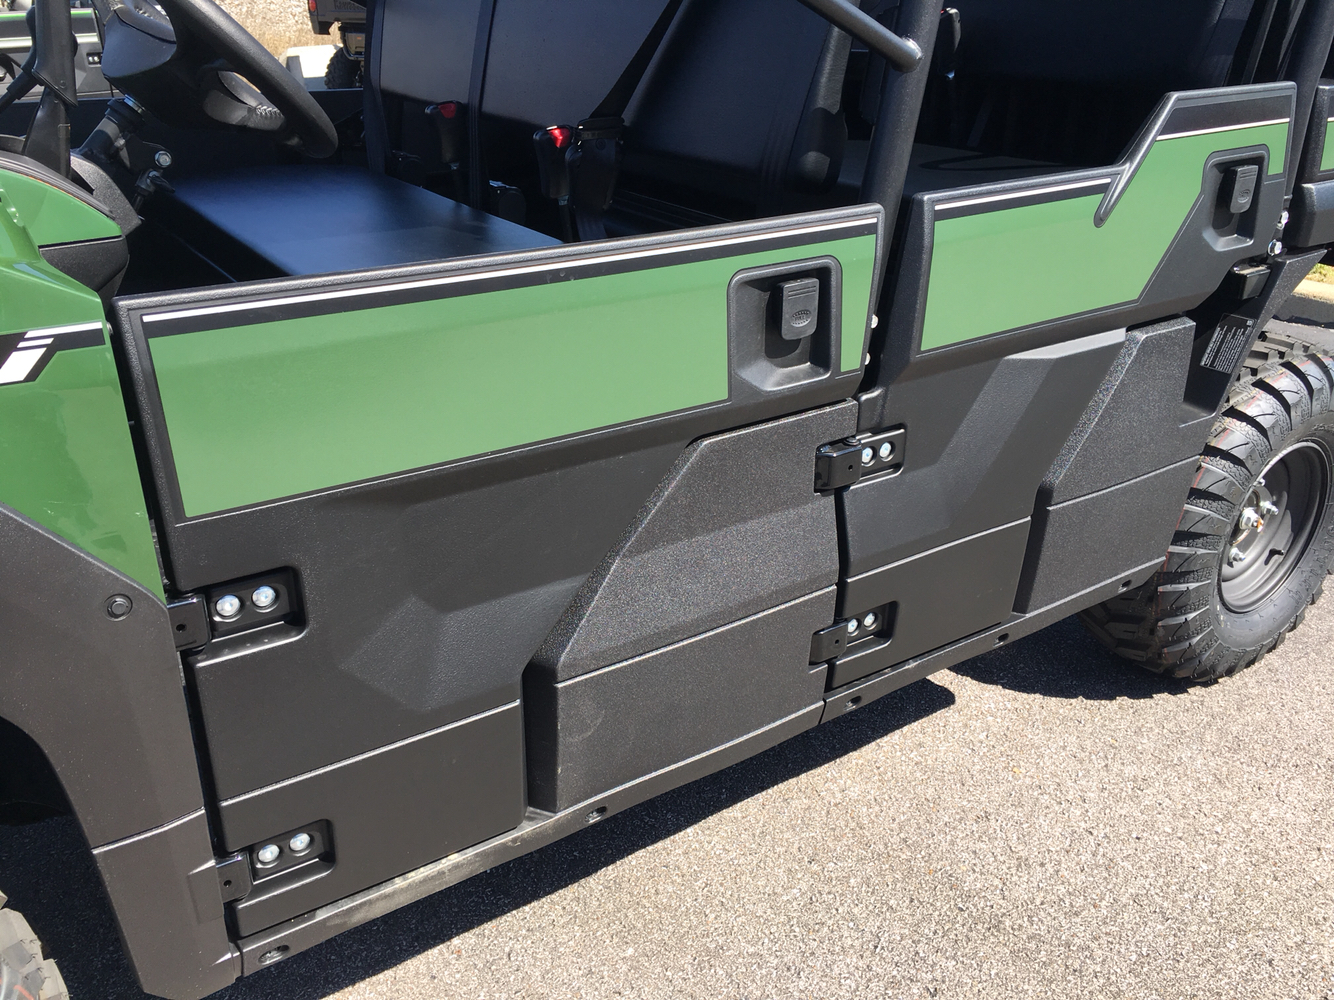 2019 Kawasaki Mule PRO-FXT EPS in Evansville, Indiana - Photo 10